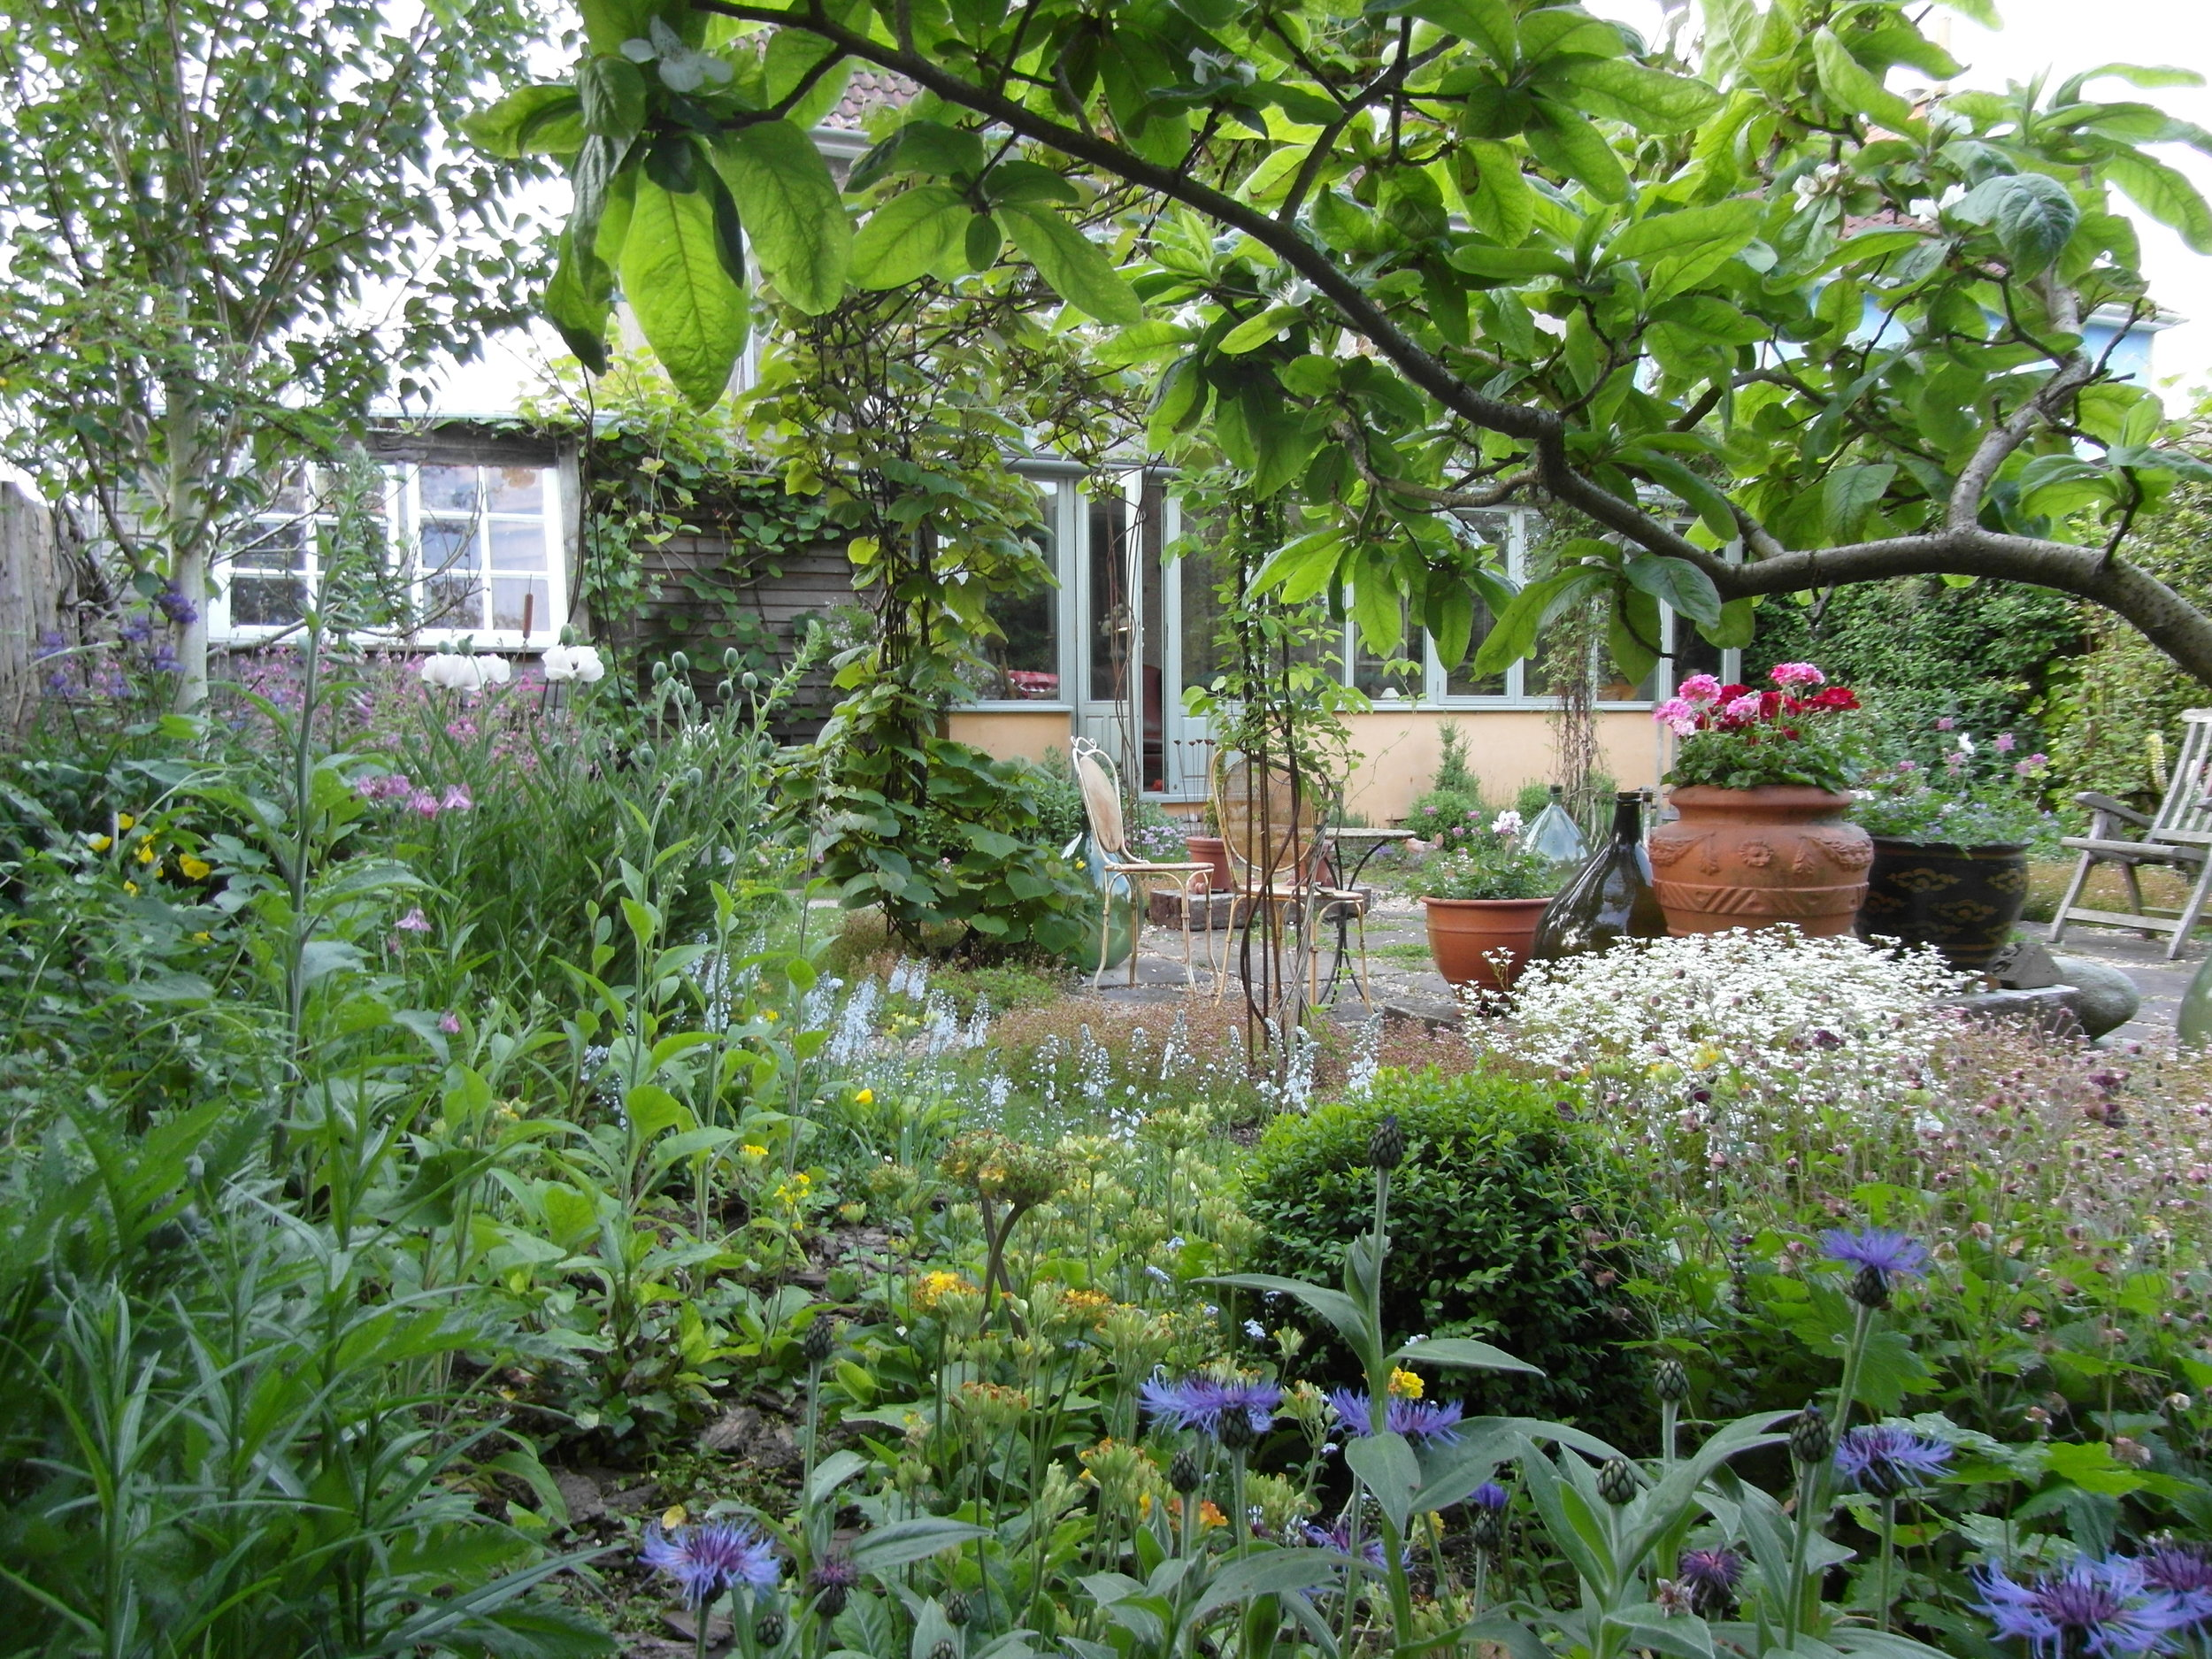 Creating Gardens   Beautiful, nurturing, bio-diverse places providing enormous benefits for ourselves and the environment...